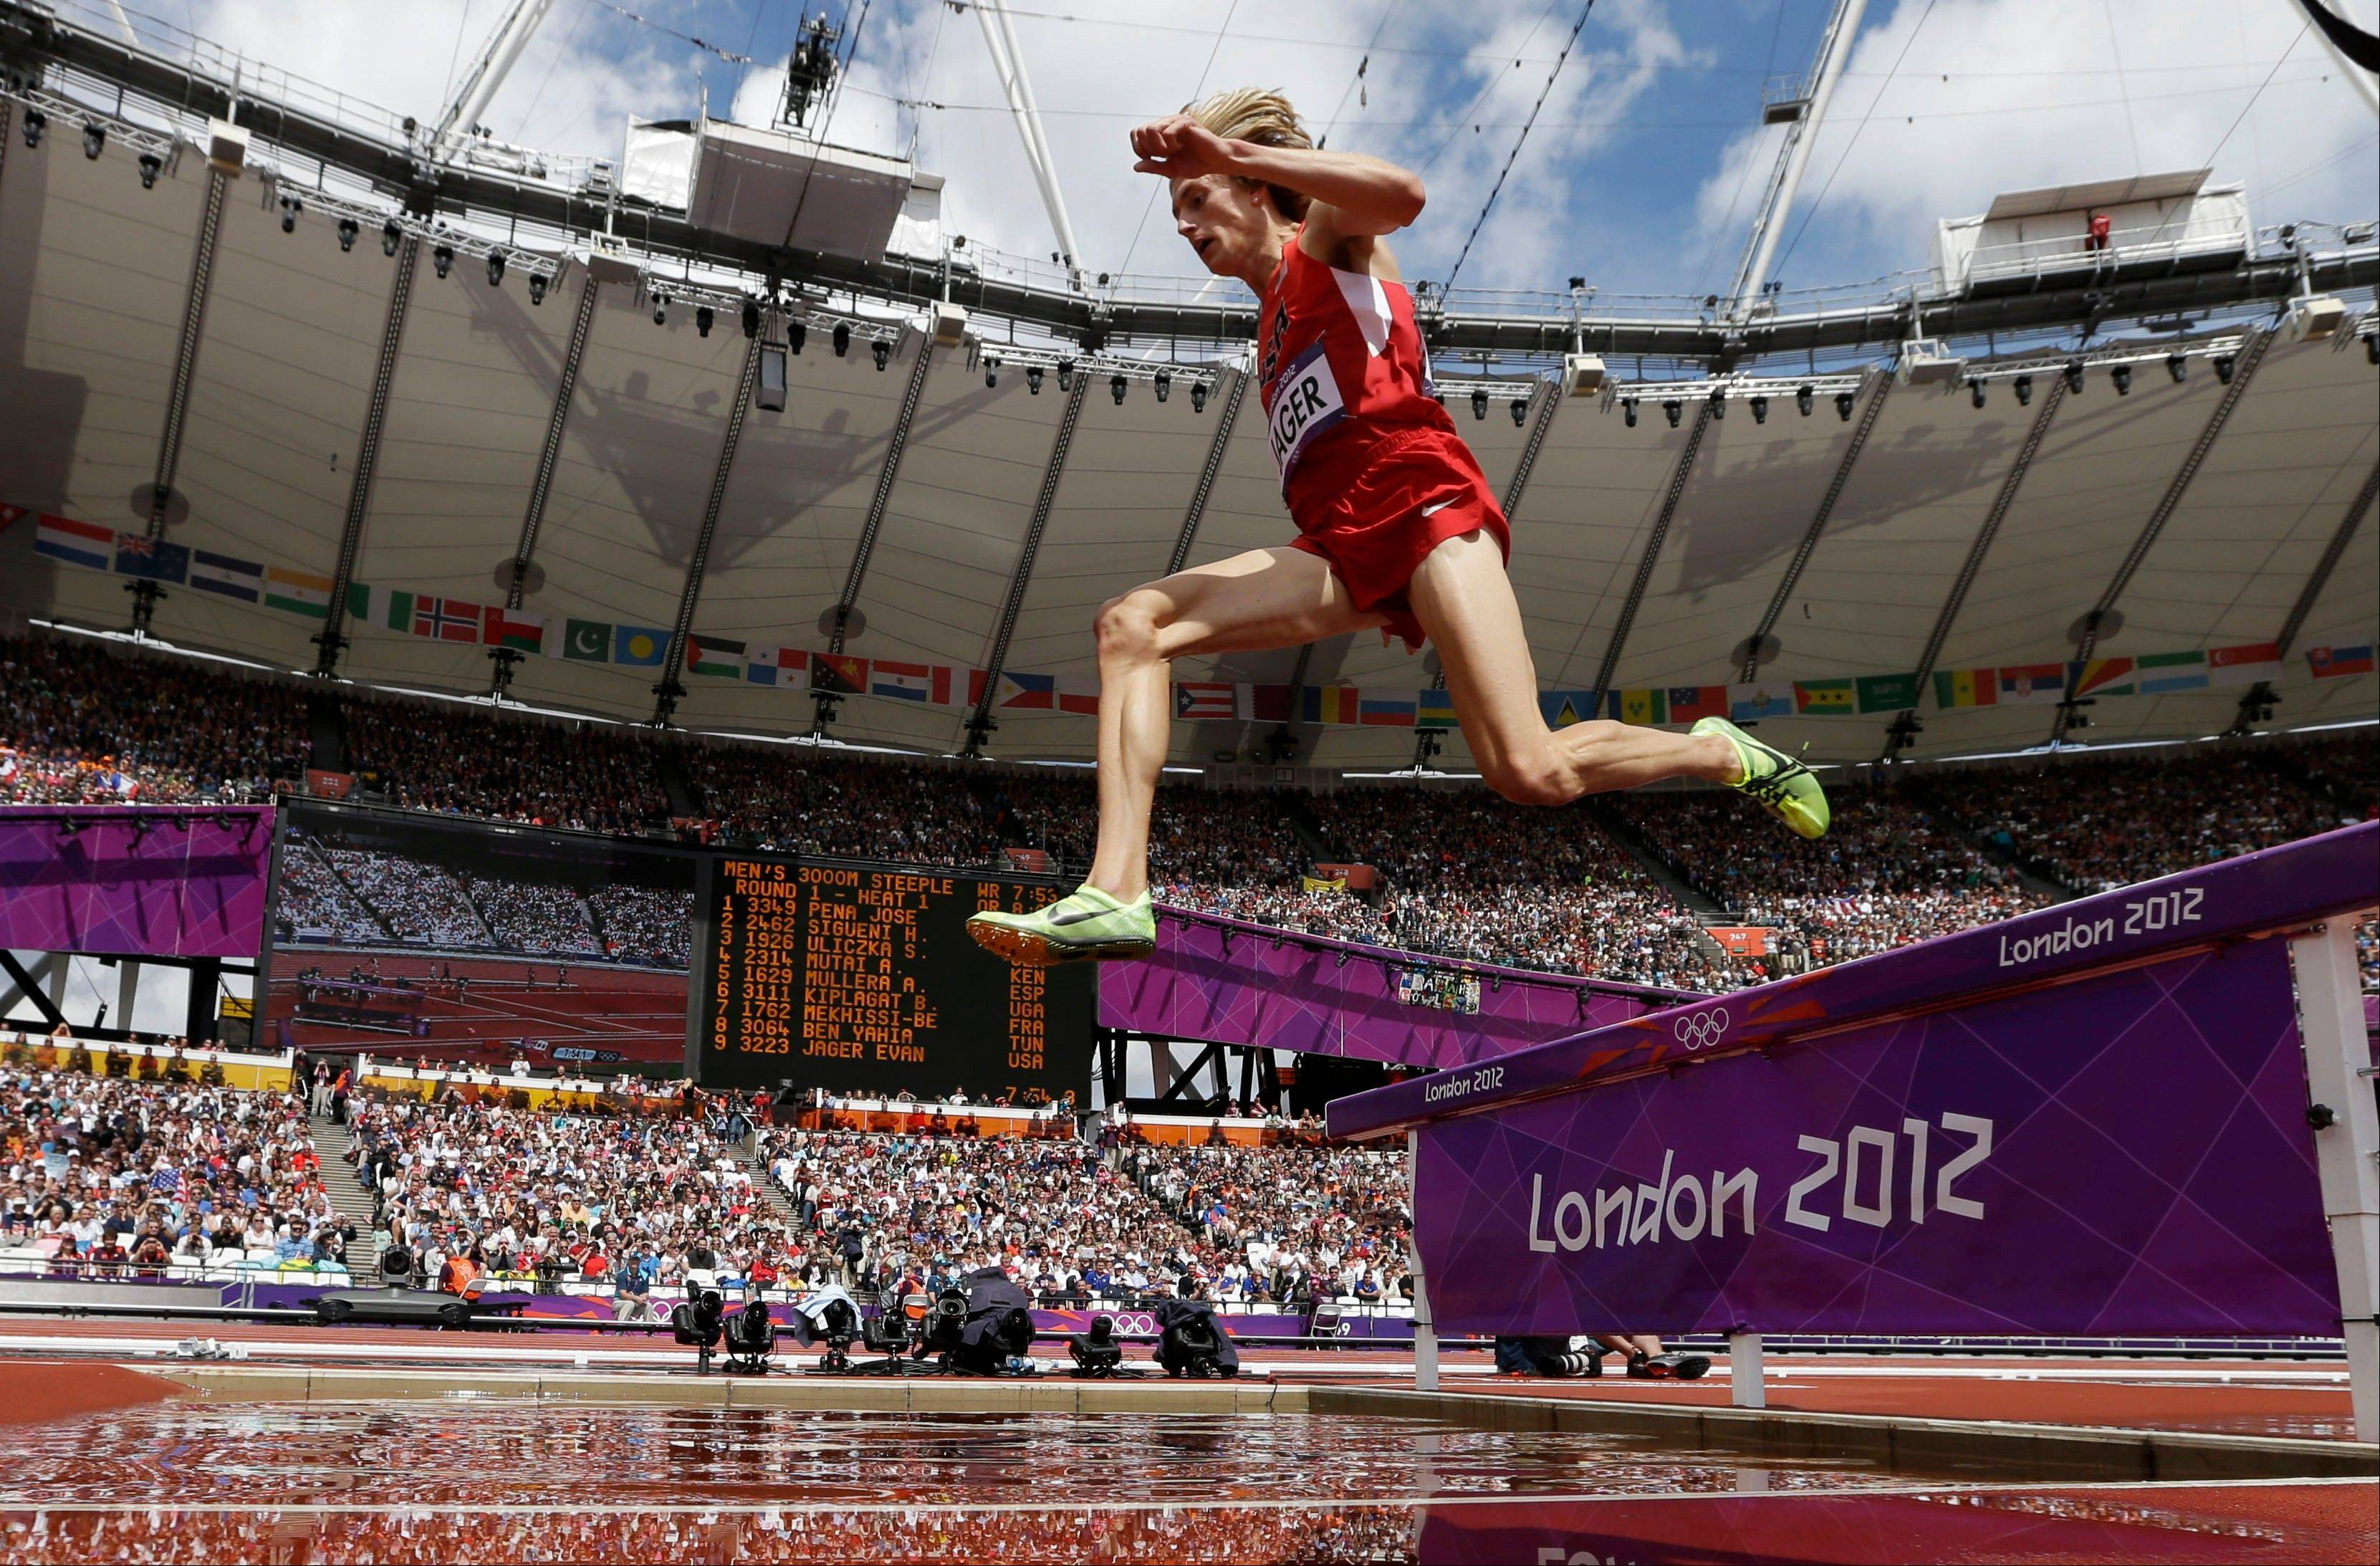 United States' Evan Jager competes in a men's 3000-meter steeplechase heat during the athletics in the Olympic Stadium at the 2012 Summer Olympics, London, Friday, Aug. 3, 2012.